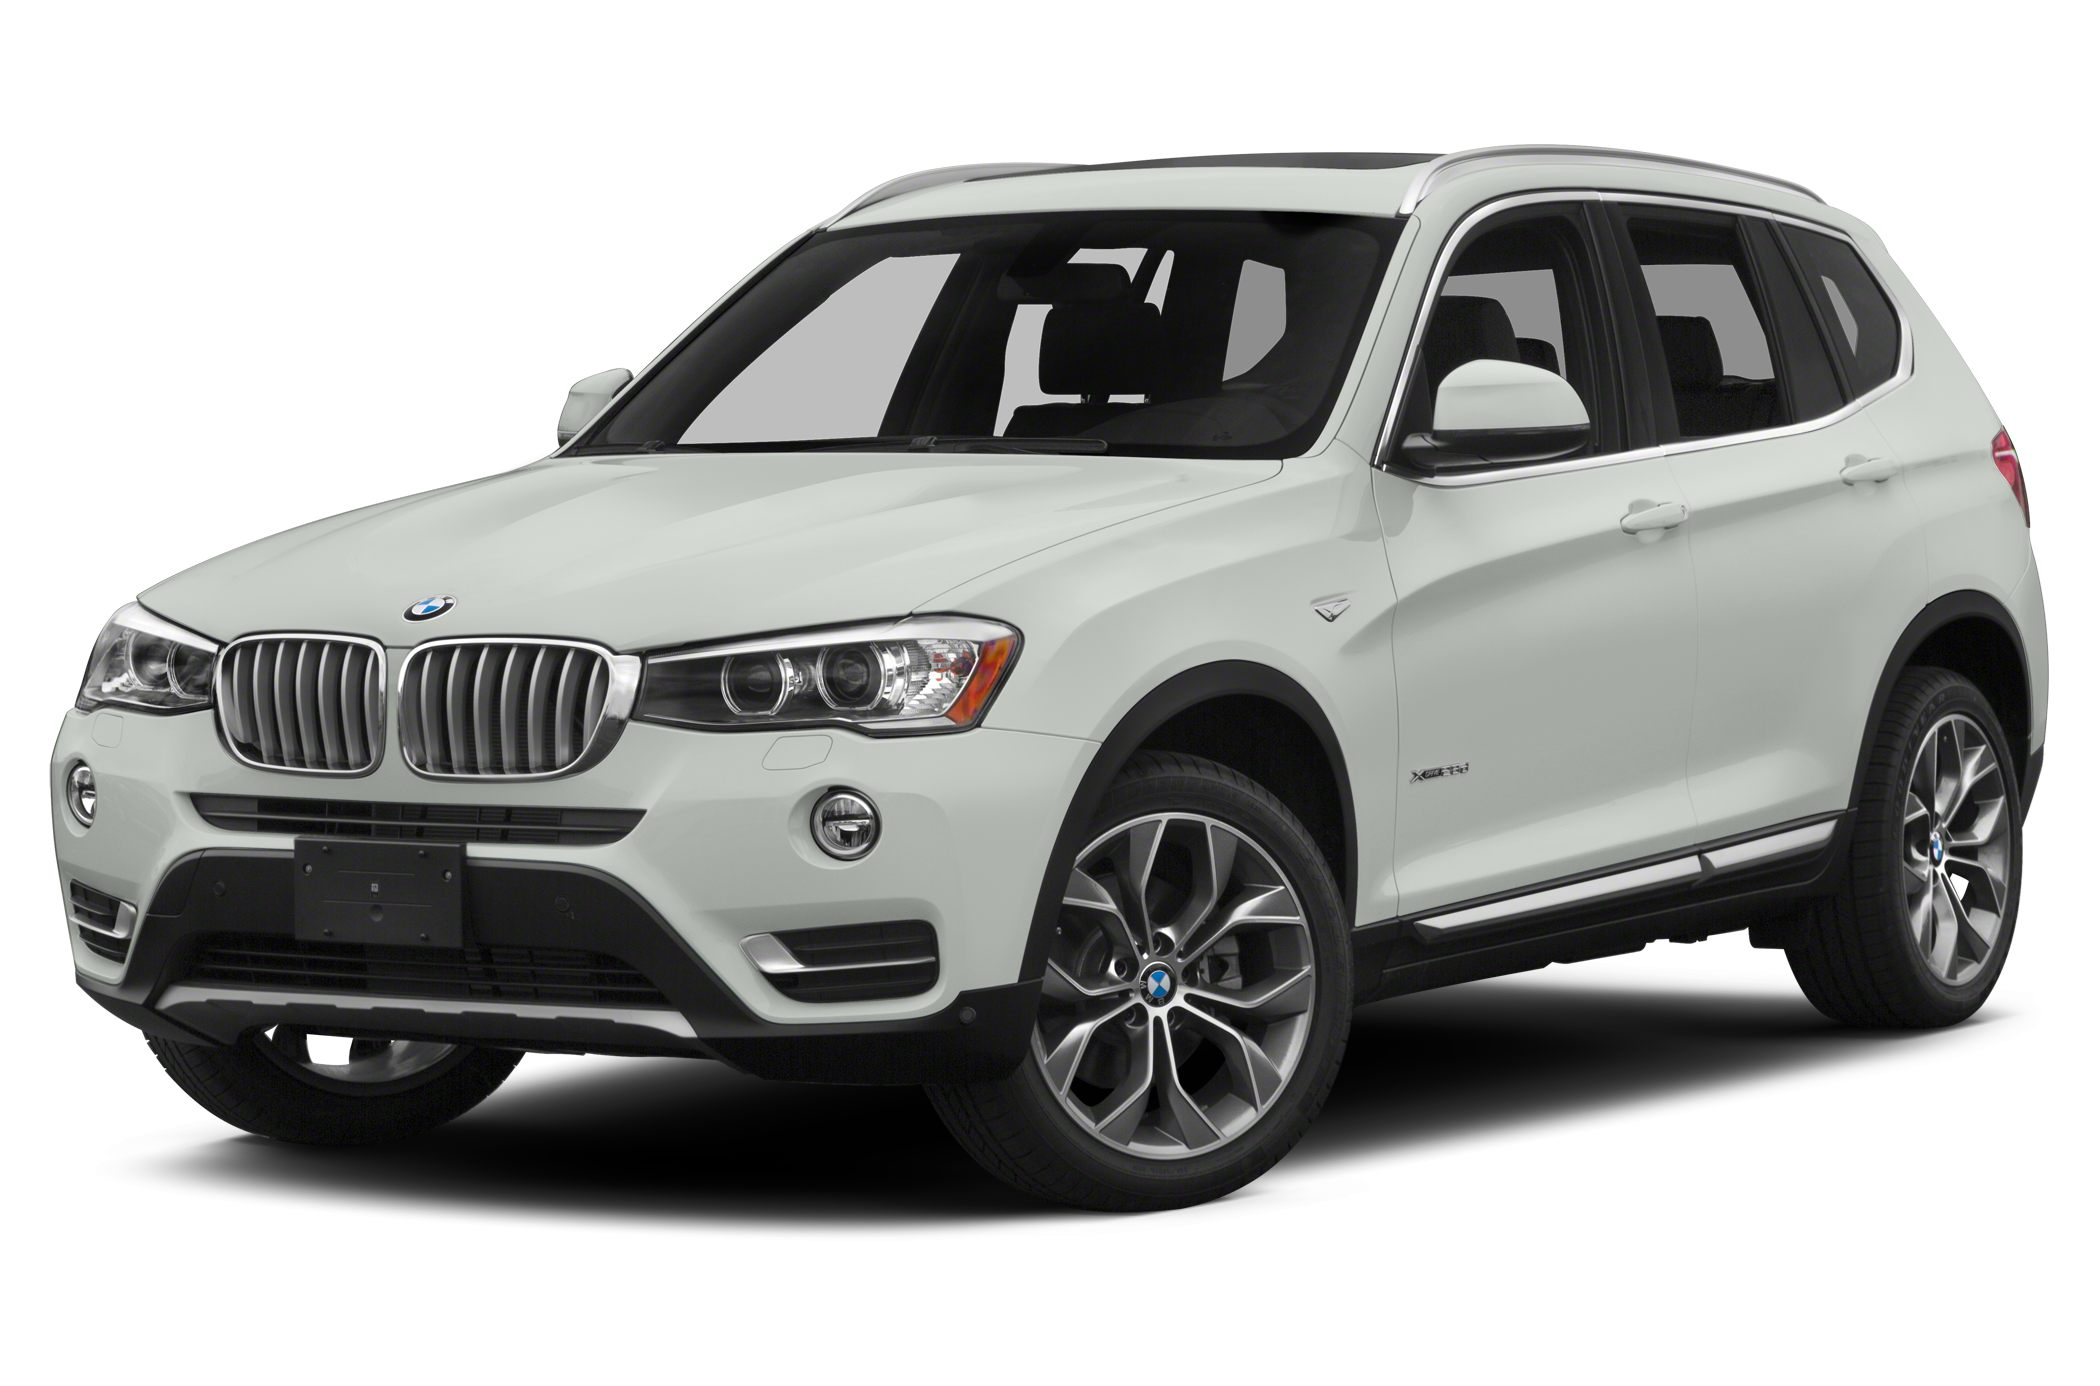 2015 BMW X3 XDrive28d SUV for sale in Raleigh for $53,525 with 3 miles.